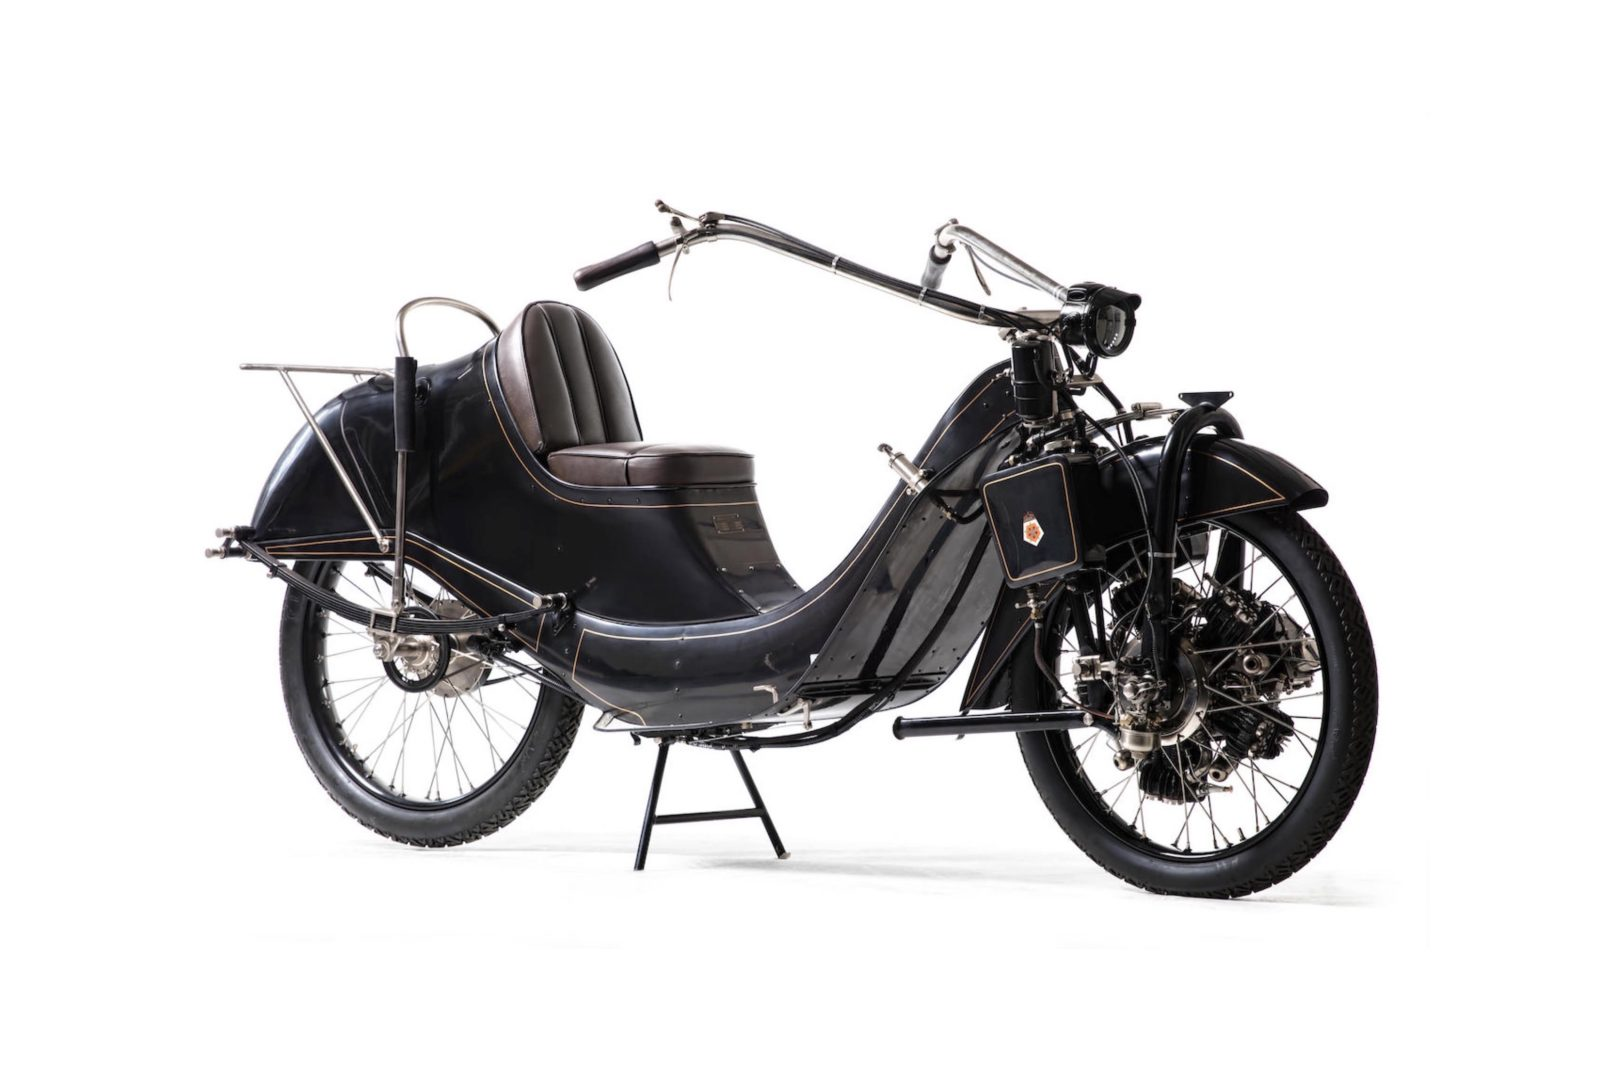 Megola Motorcycle Touring Model 5 1 1600x1092 - The Radial Engined Megola Motorcycle